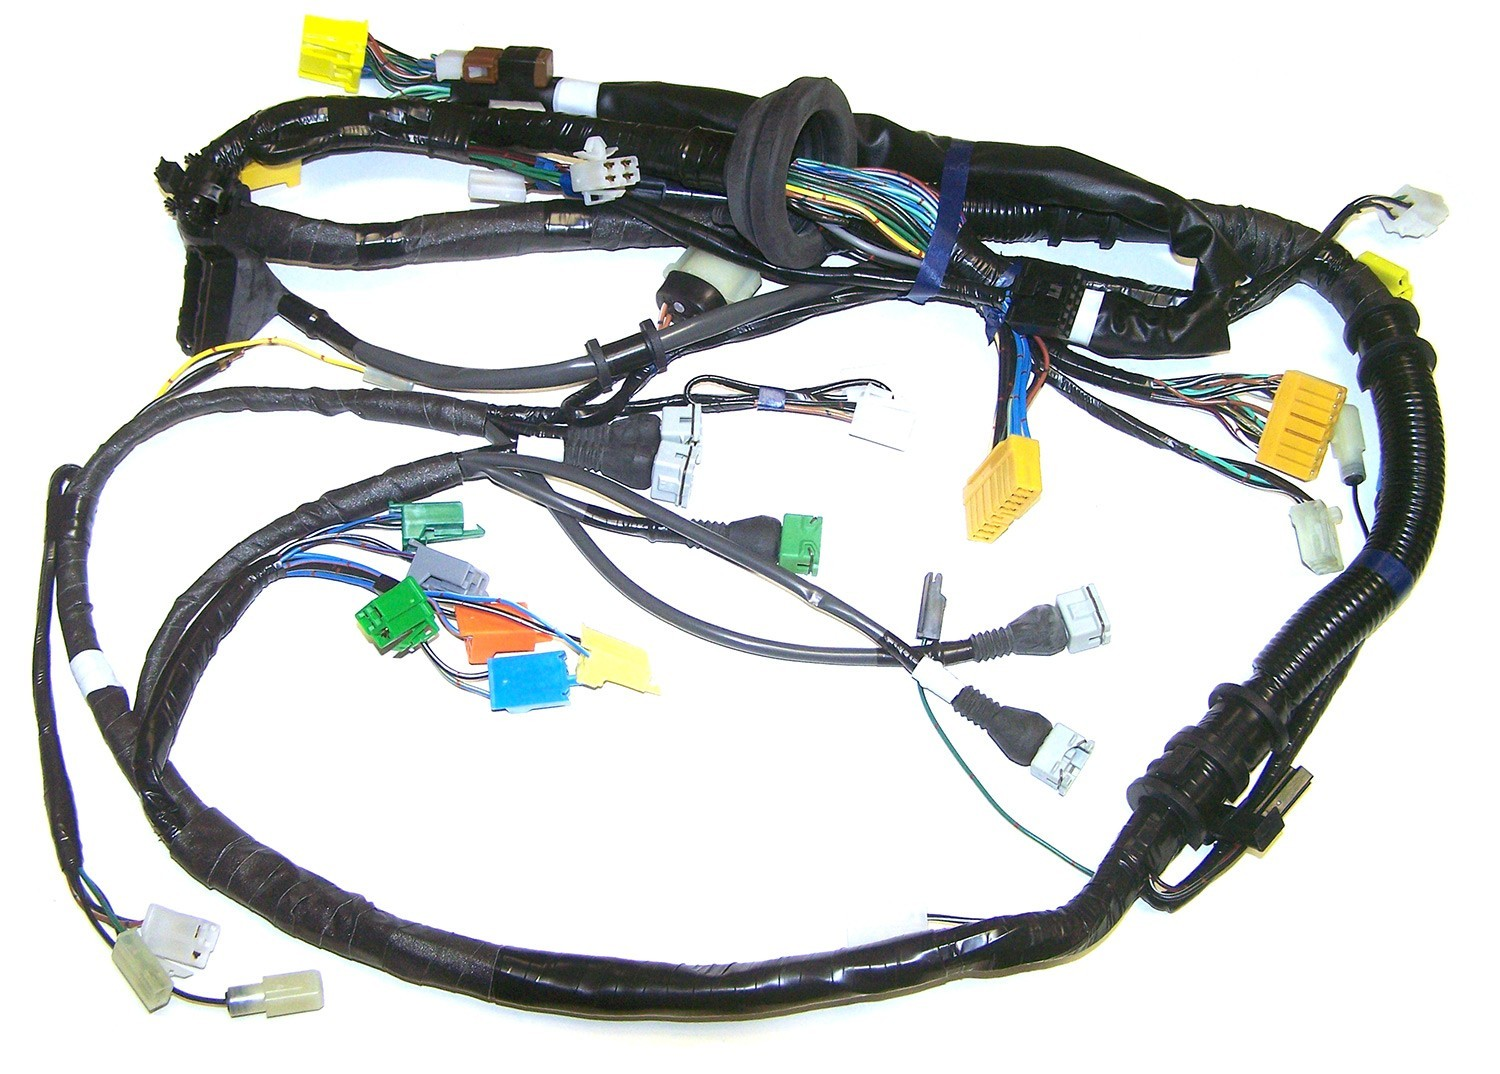 87-88 Turbo Rx7 Engine Wiring Harness (N332-18-051)